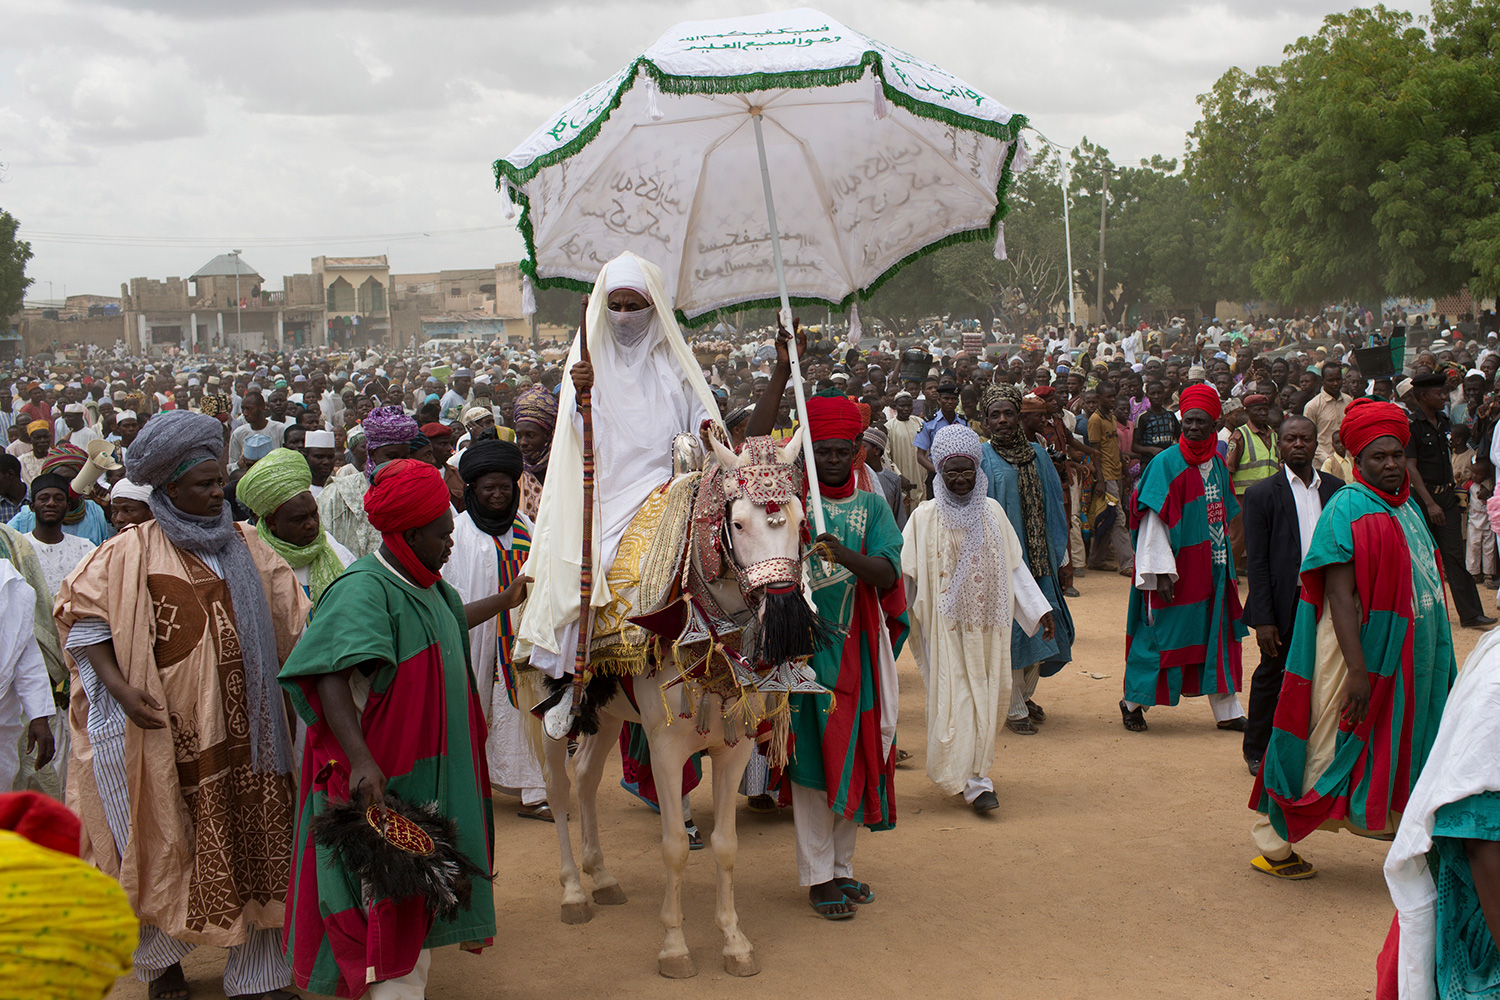 The photo shows the emir atop a horse with decorative coverings while a massive crowd surrounds him and one attendant holds an umbrella high above the emir's head.